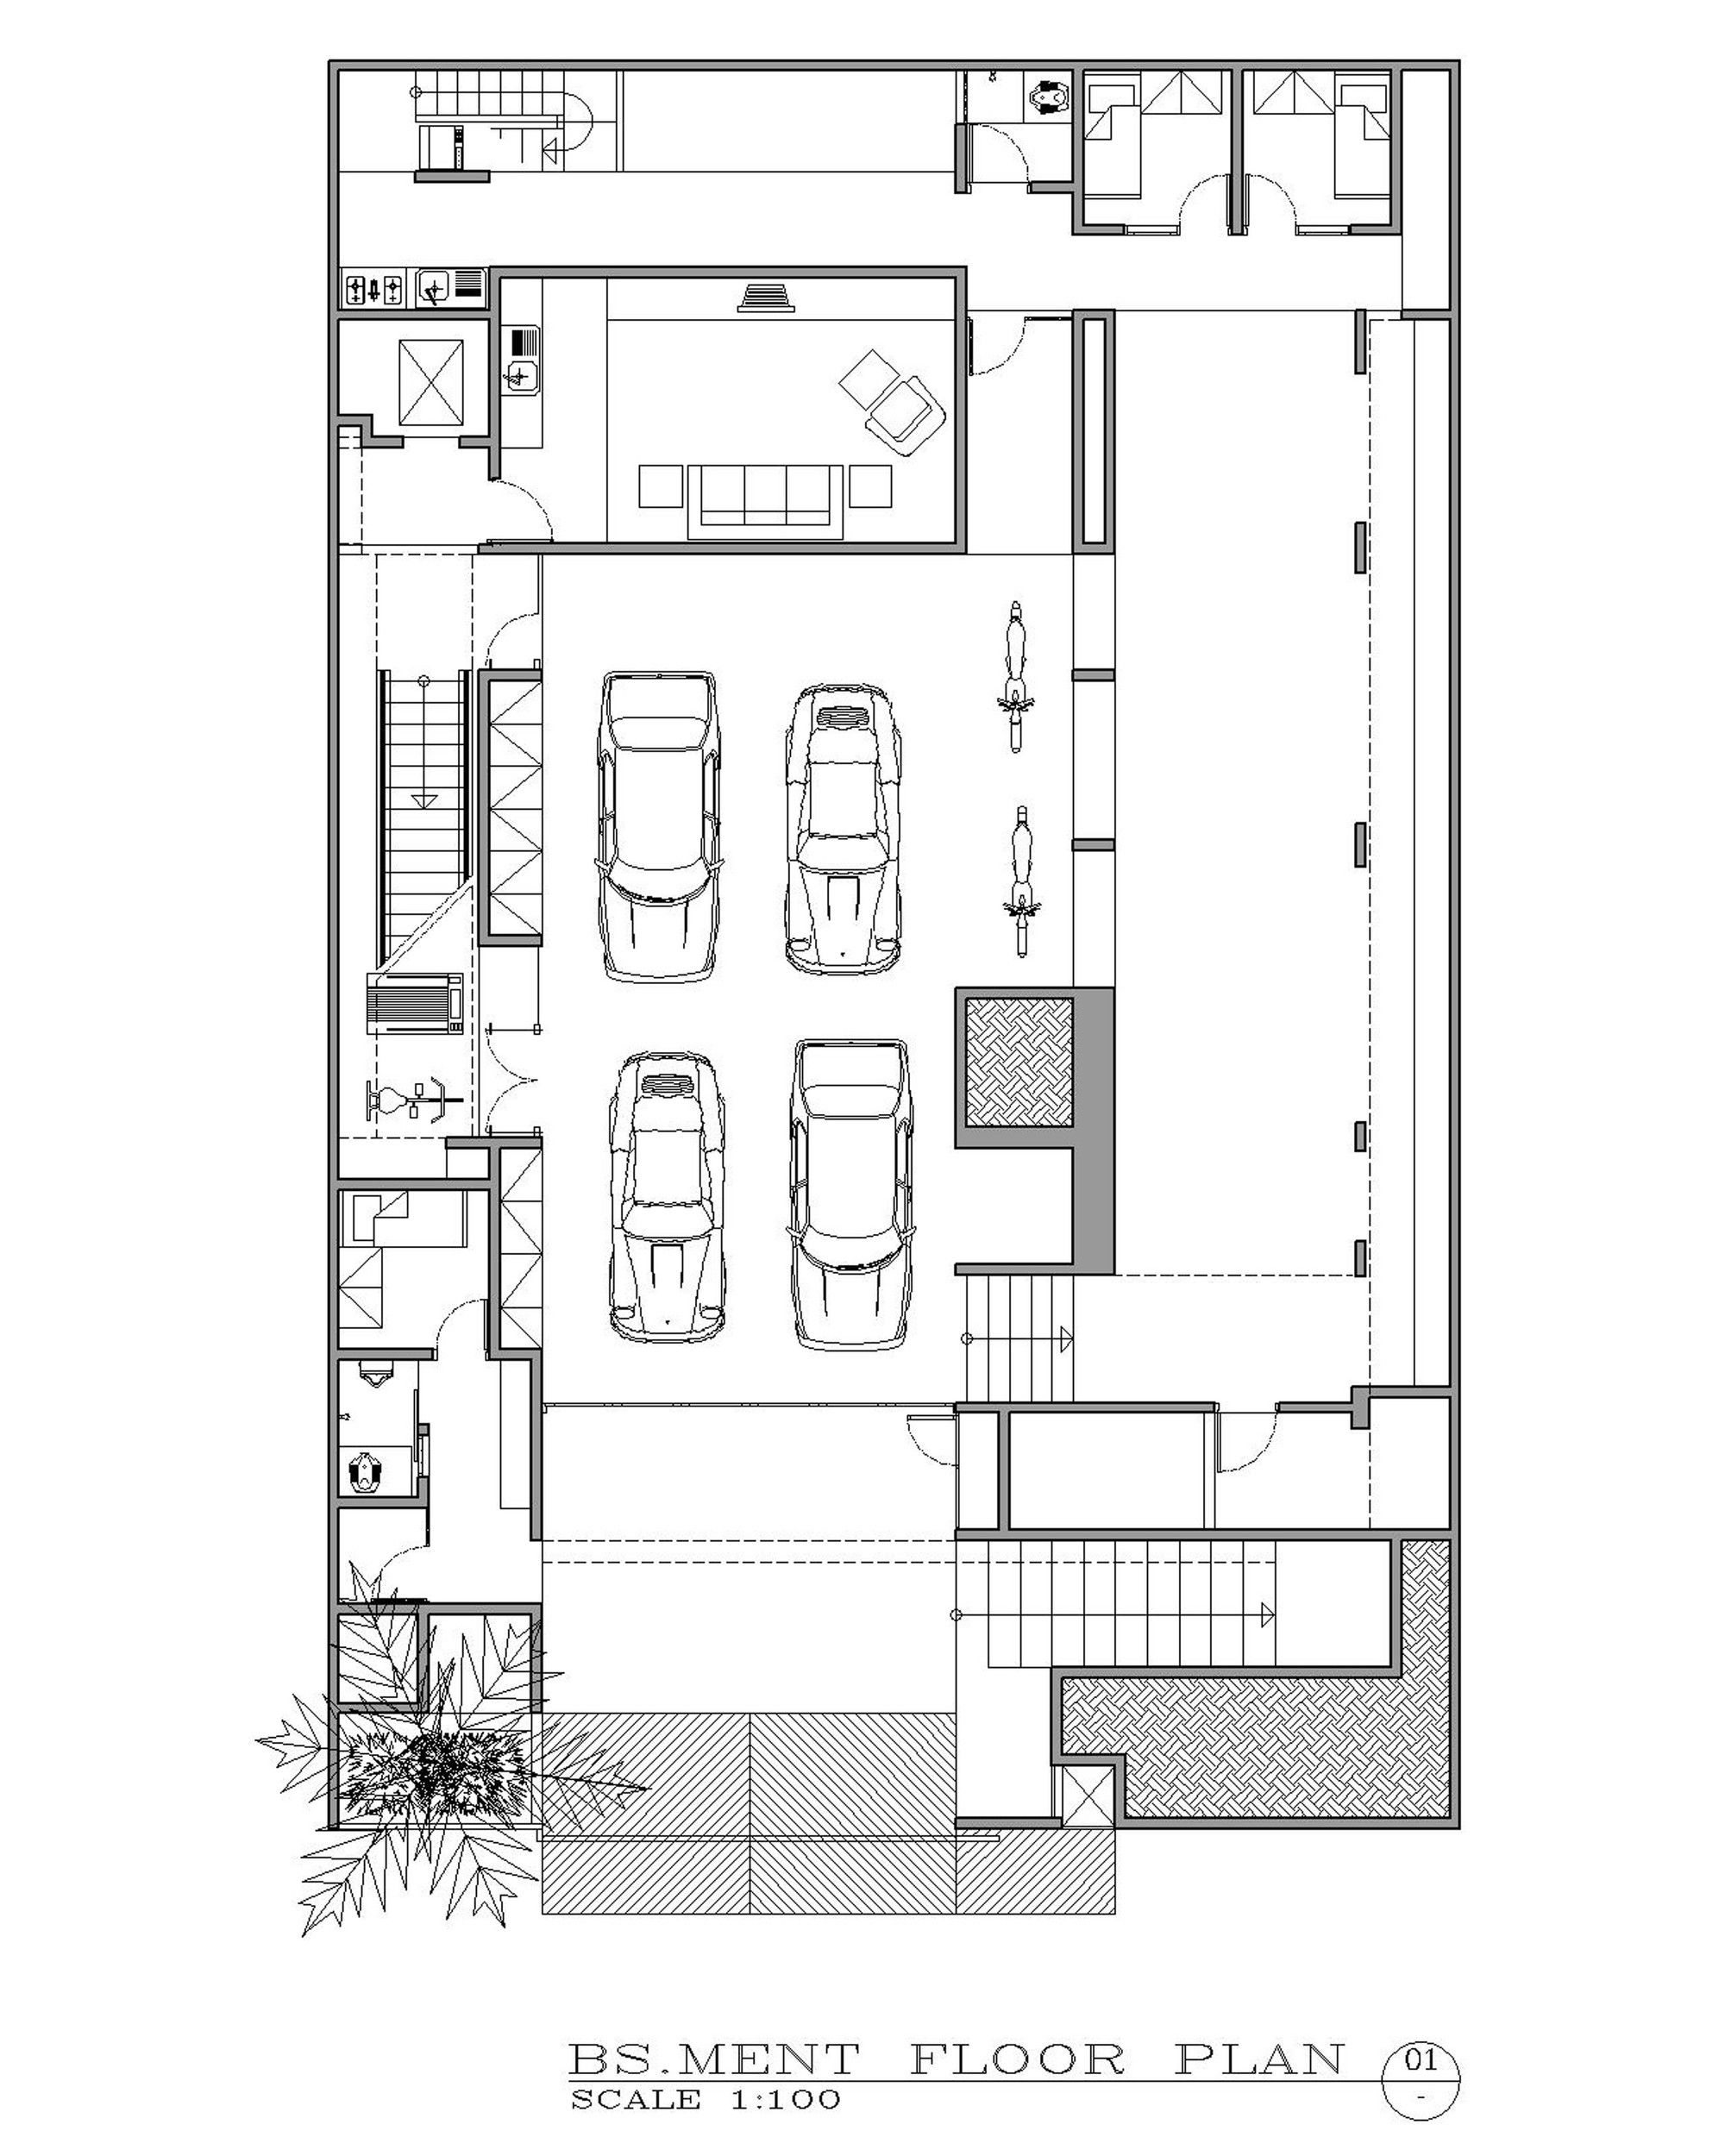 image 16 of 20 from gallery of ben house gp gets architects floor plan [ 2000 x 2500 Pixel ]